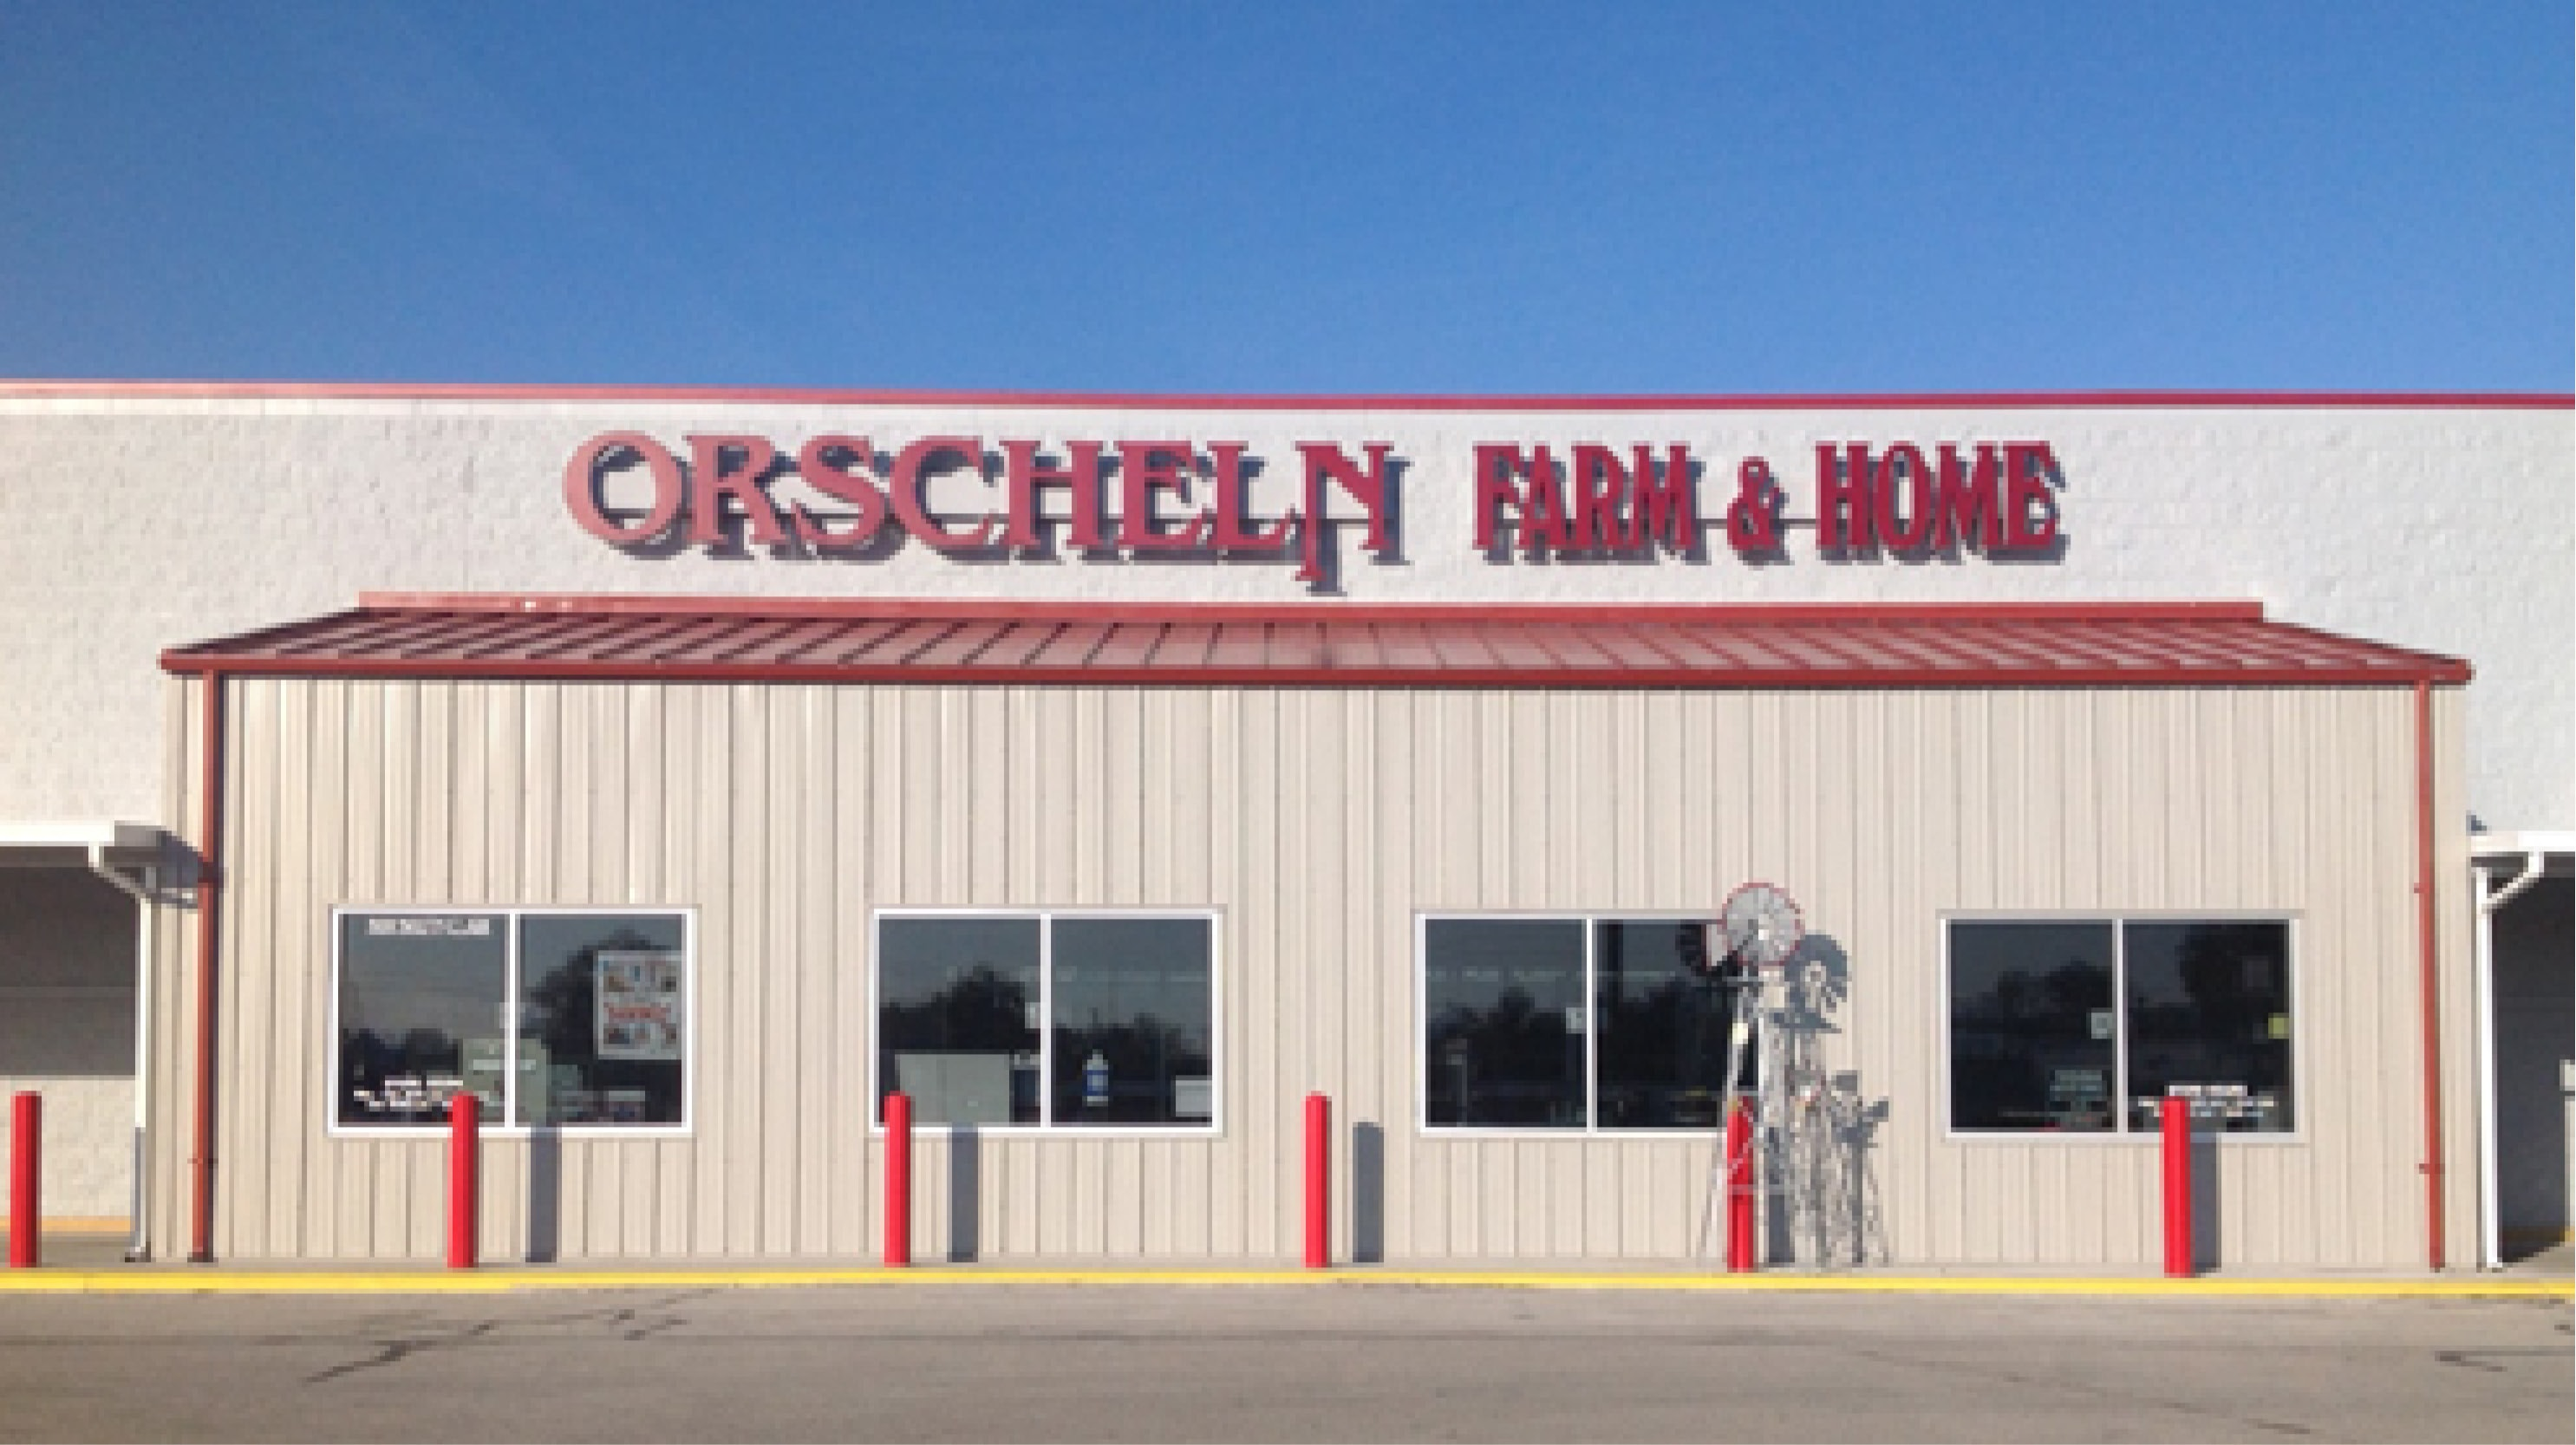 Front view of Orscheln Farm & Home Store in Mexico, Missouri 65265